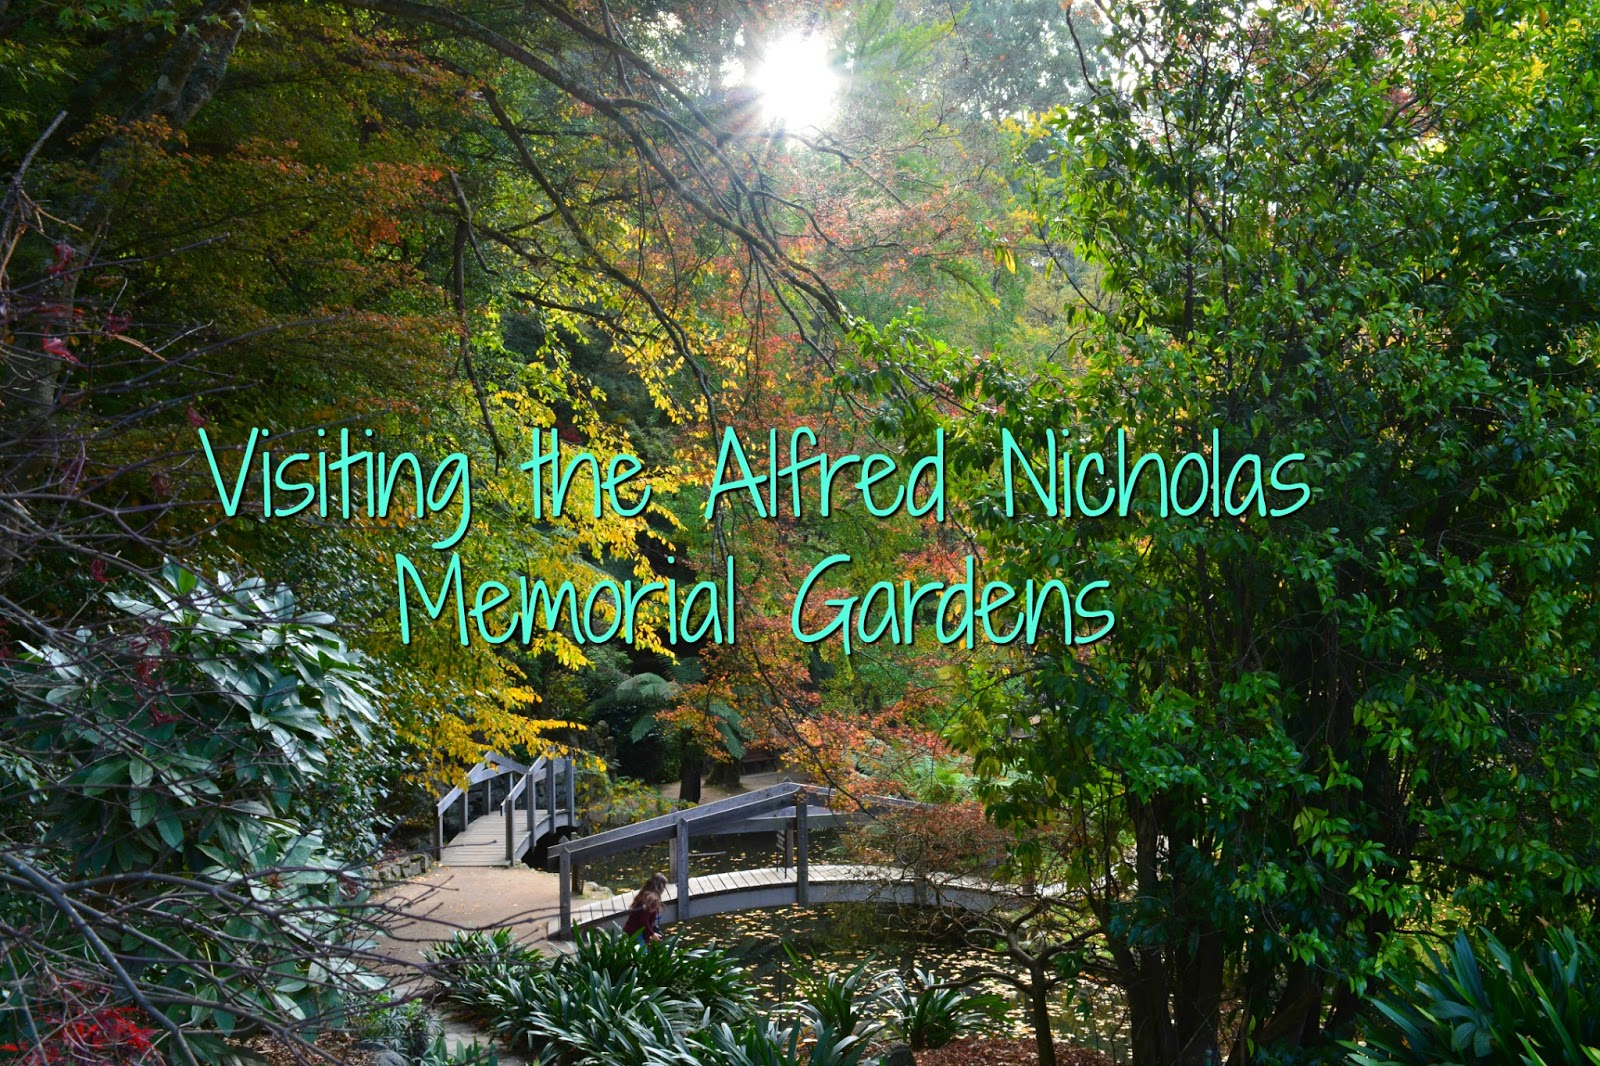 Reasons to Visit the Alfred Nicholas Memorial Gardens